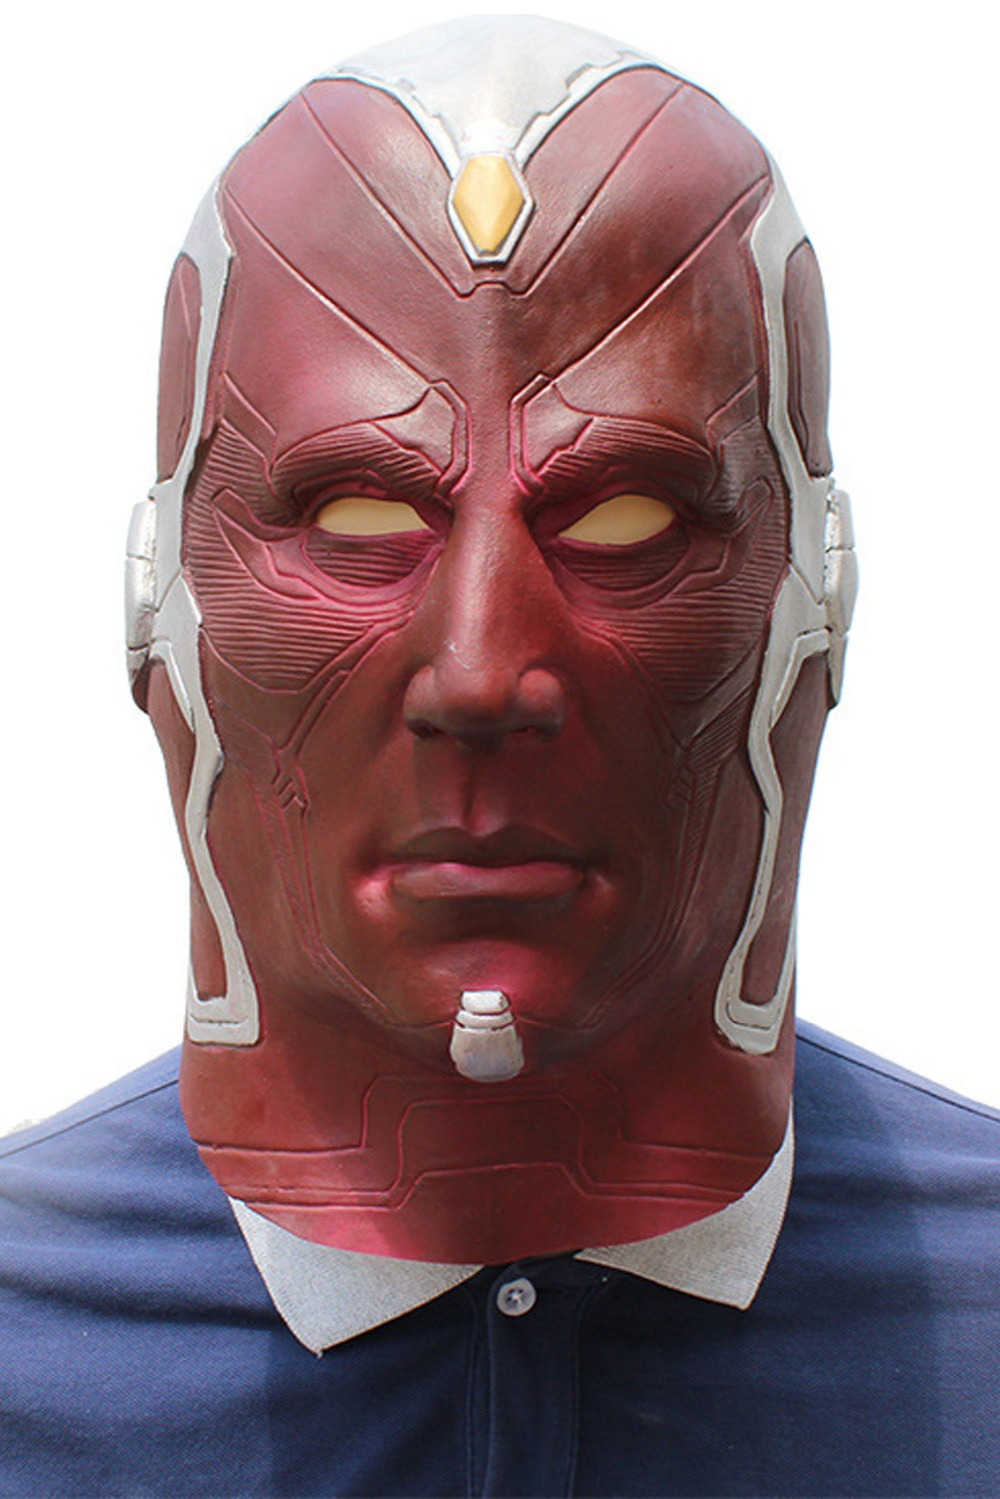 The Avengers Superhero Vision Mask Cosplay Full Head Latex Mask Fancy Ball Helmet Props Masks